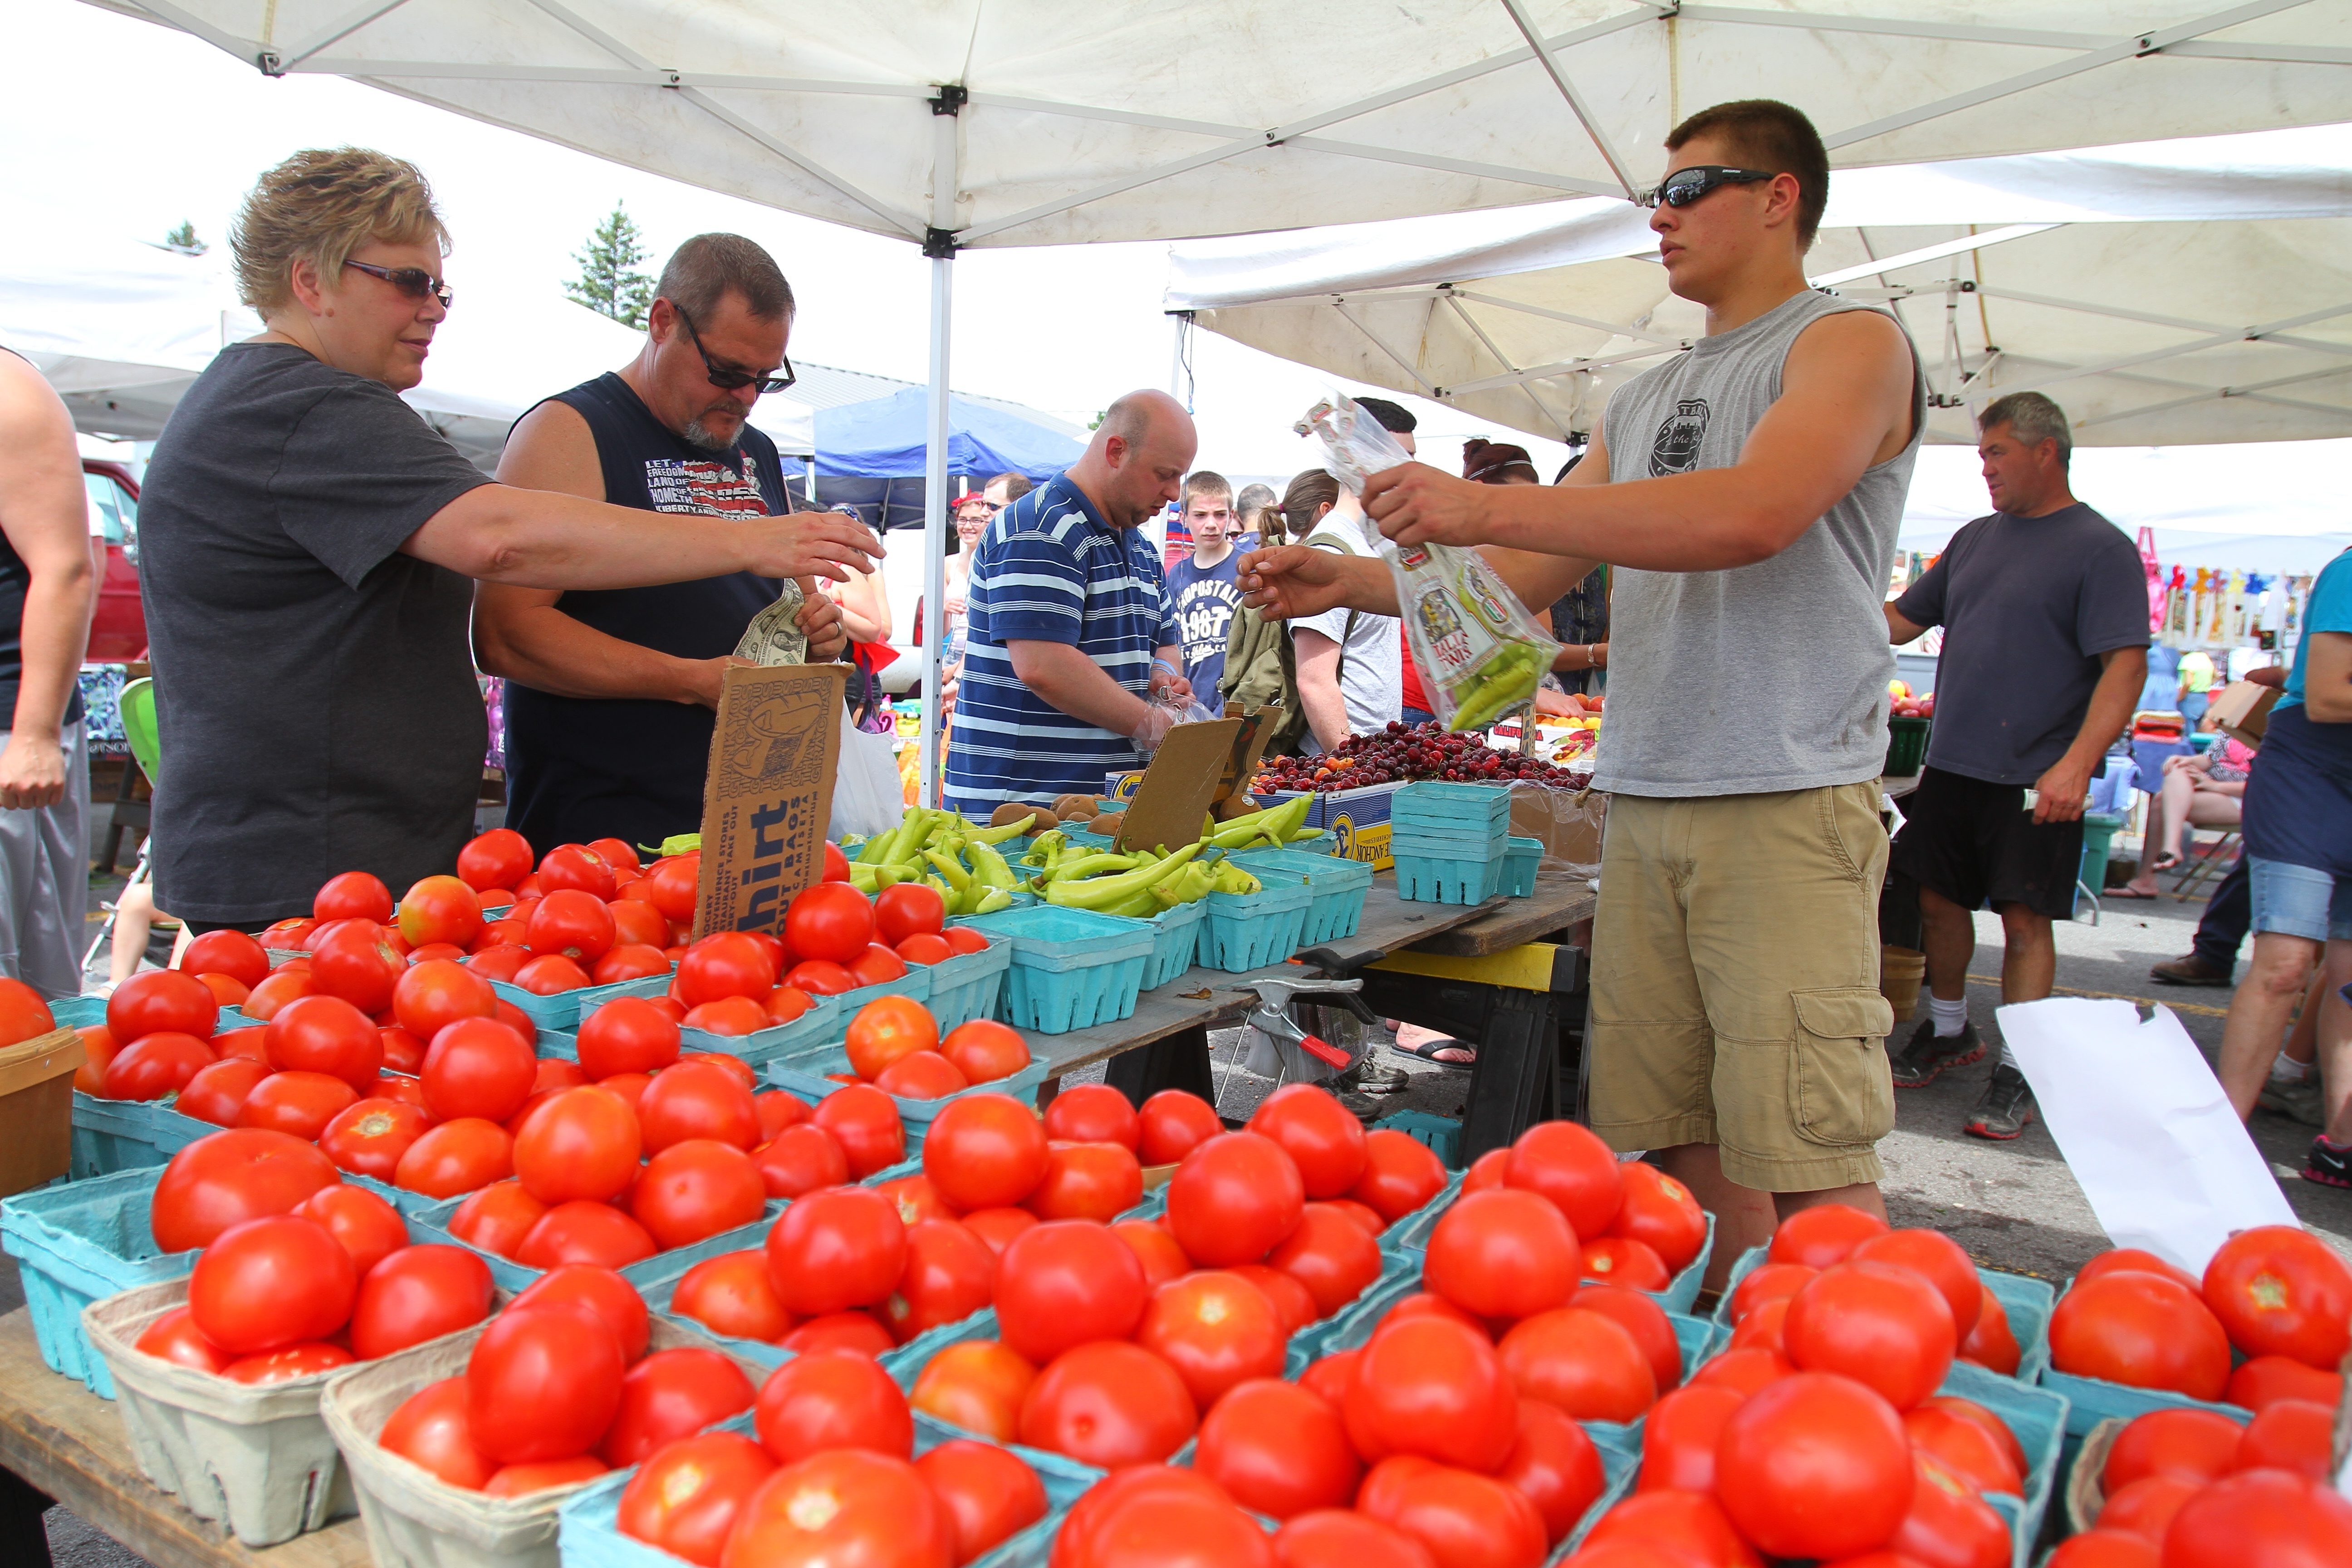 Homegrown tomatoes will soon be available at local farmers' markets.